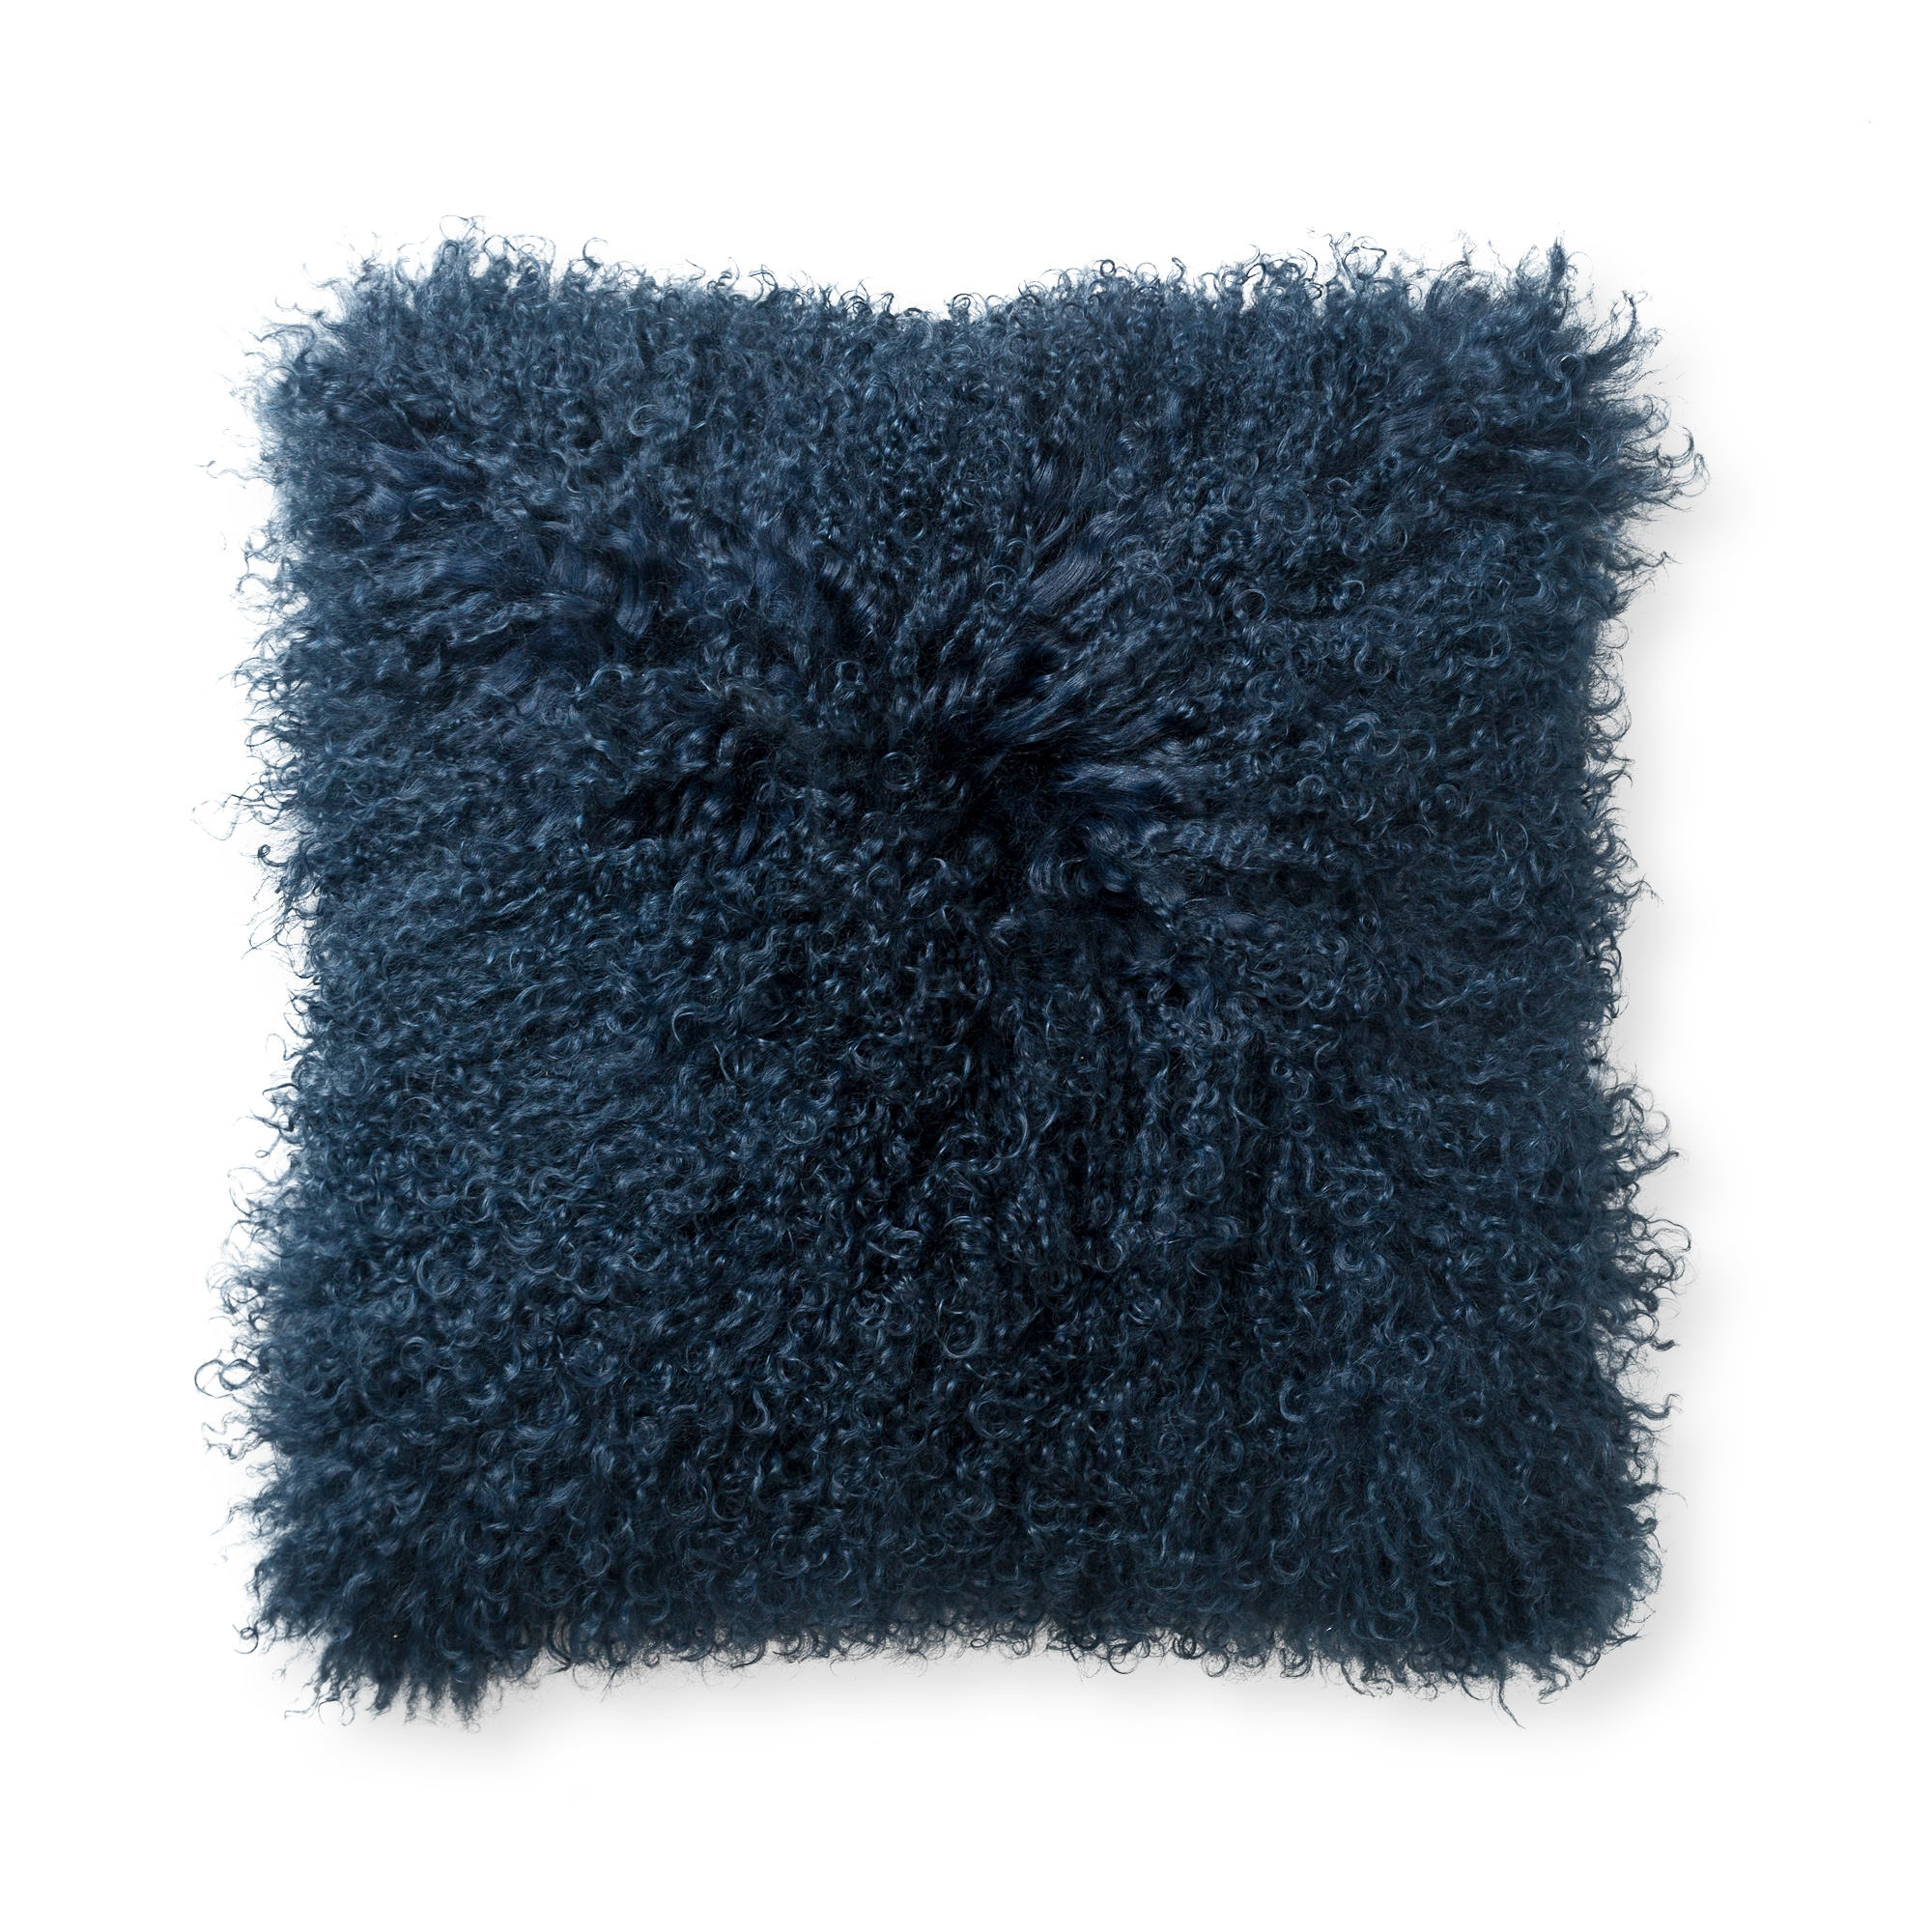 faux best charcoal pillow cover throw covers tibet llama rectangle genuine siscovers mongolian lamb real fur